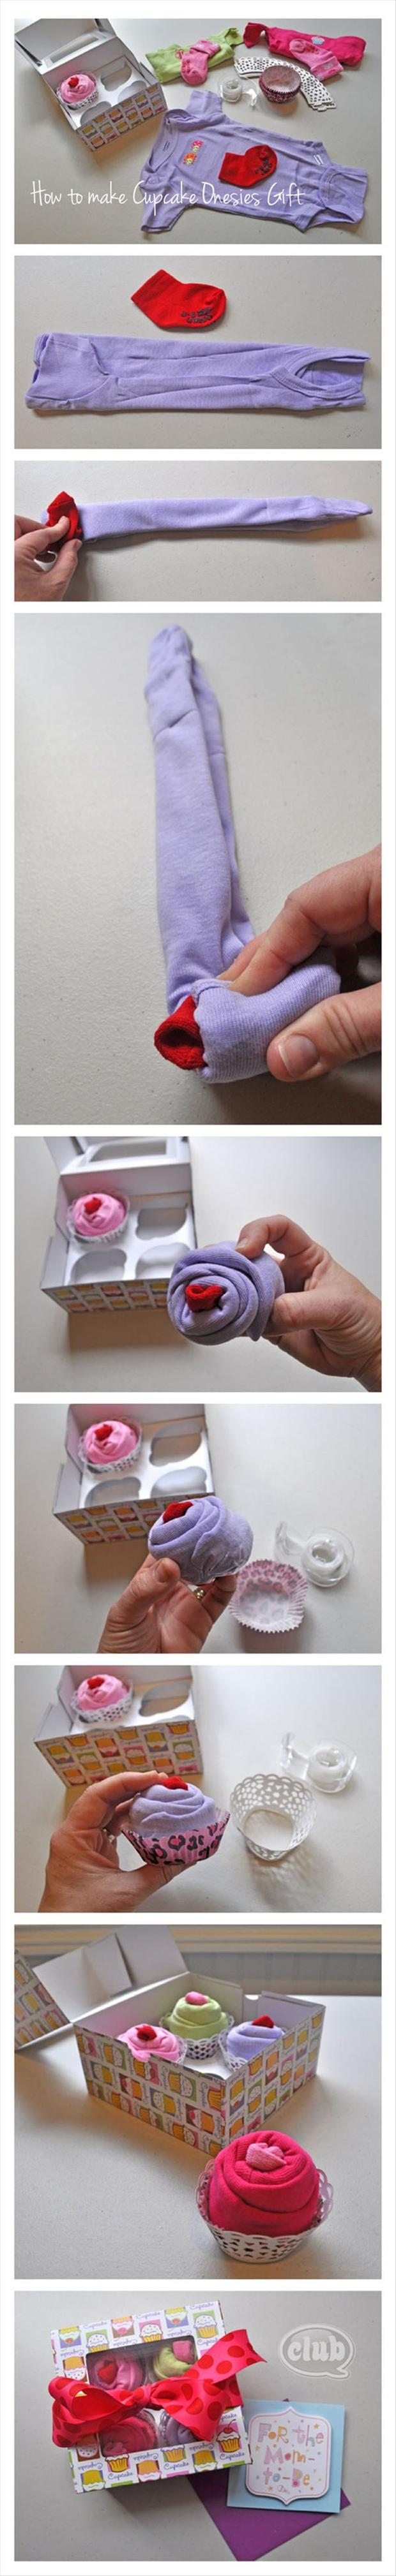 wrap wires to make cupcake onesies, fun crafts